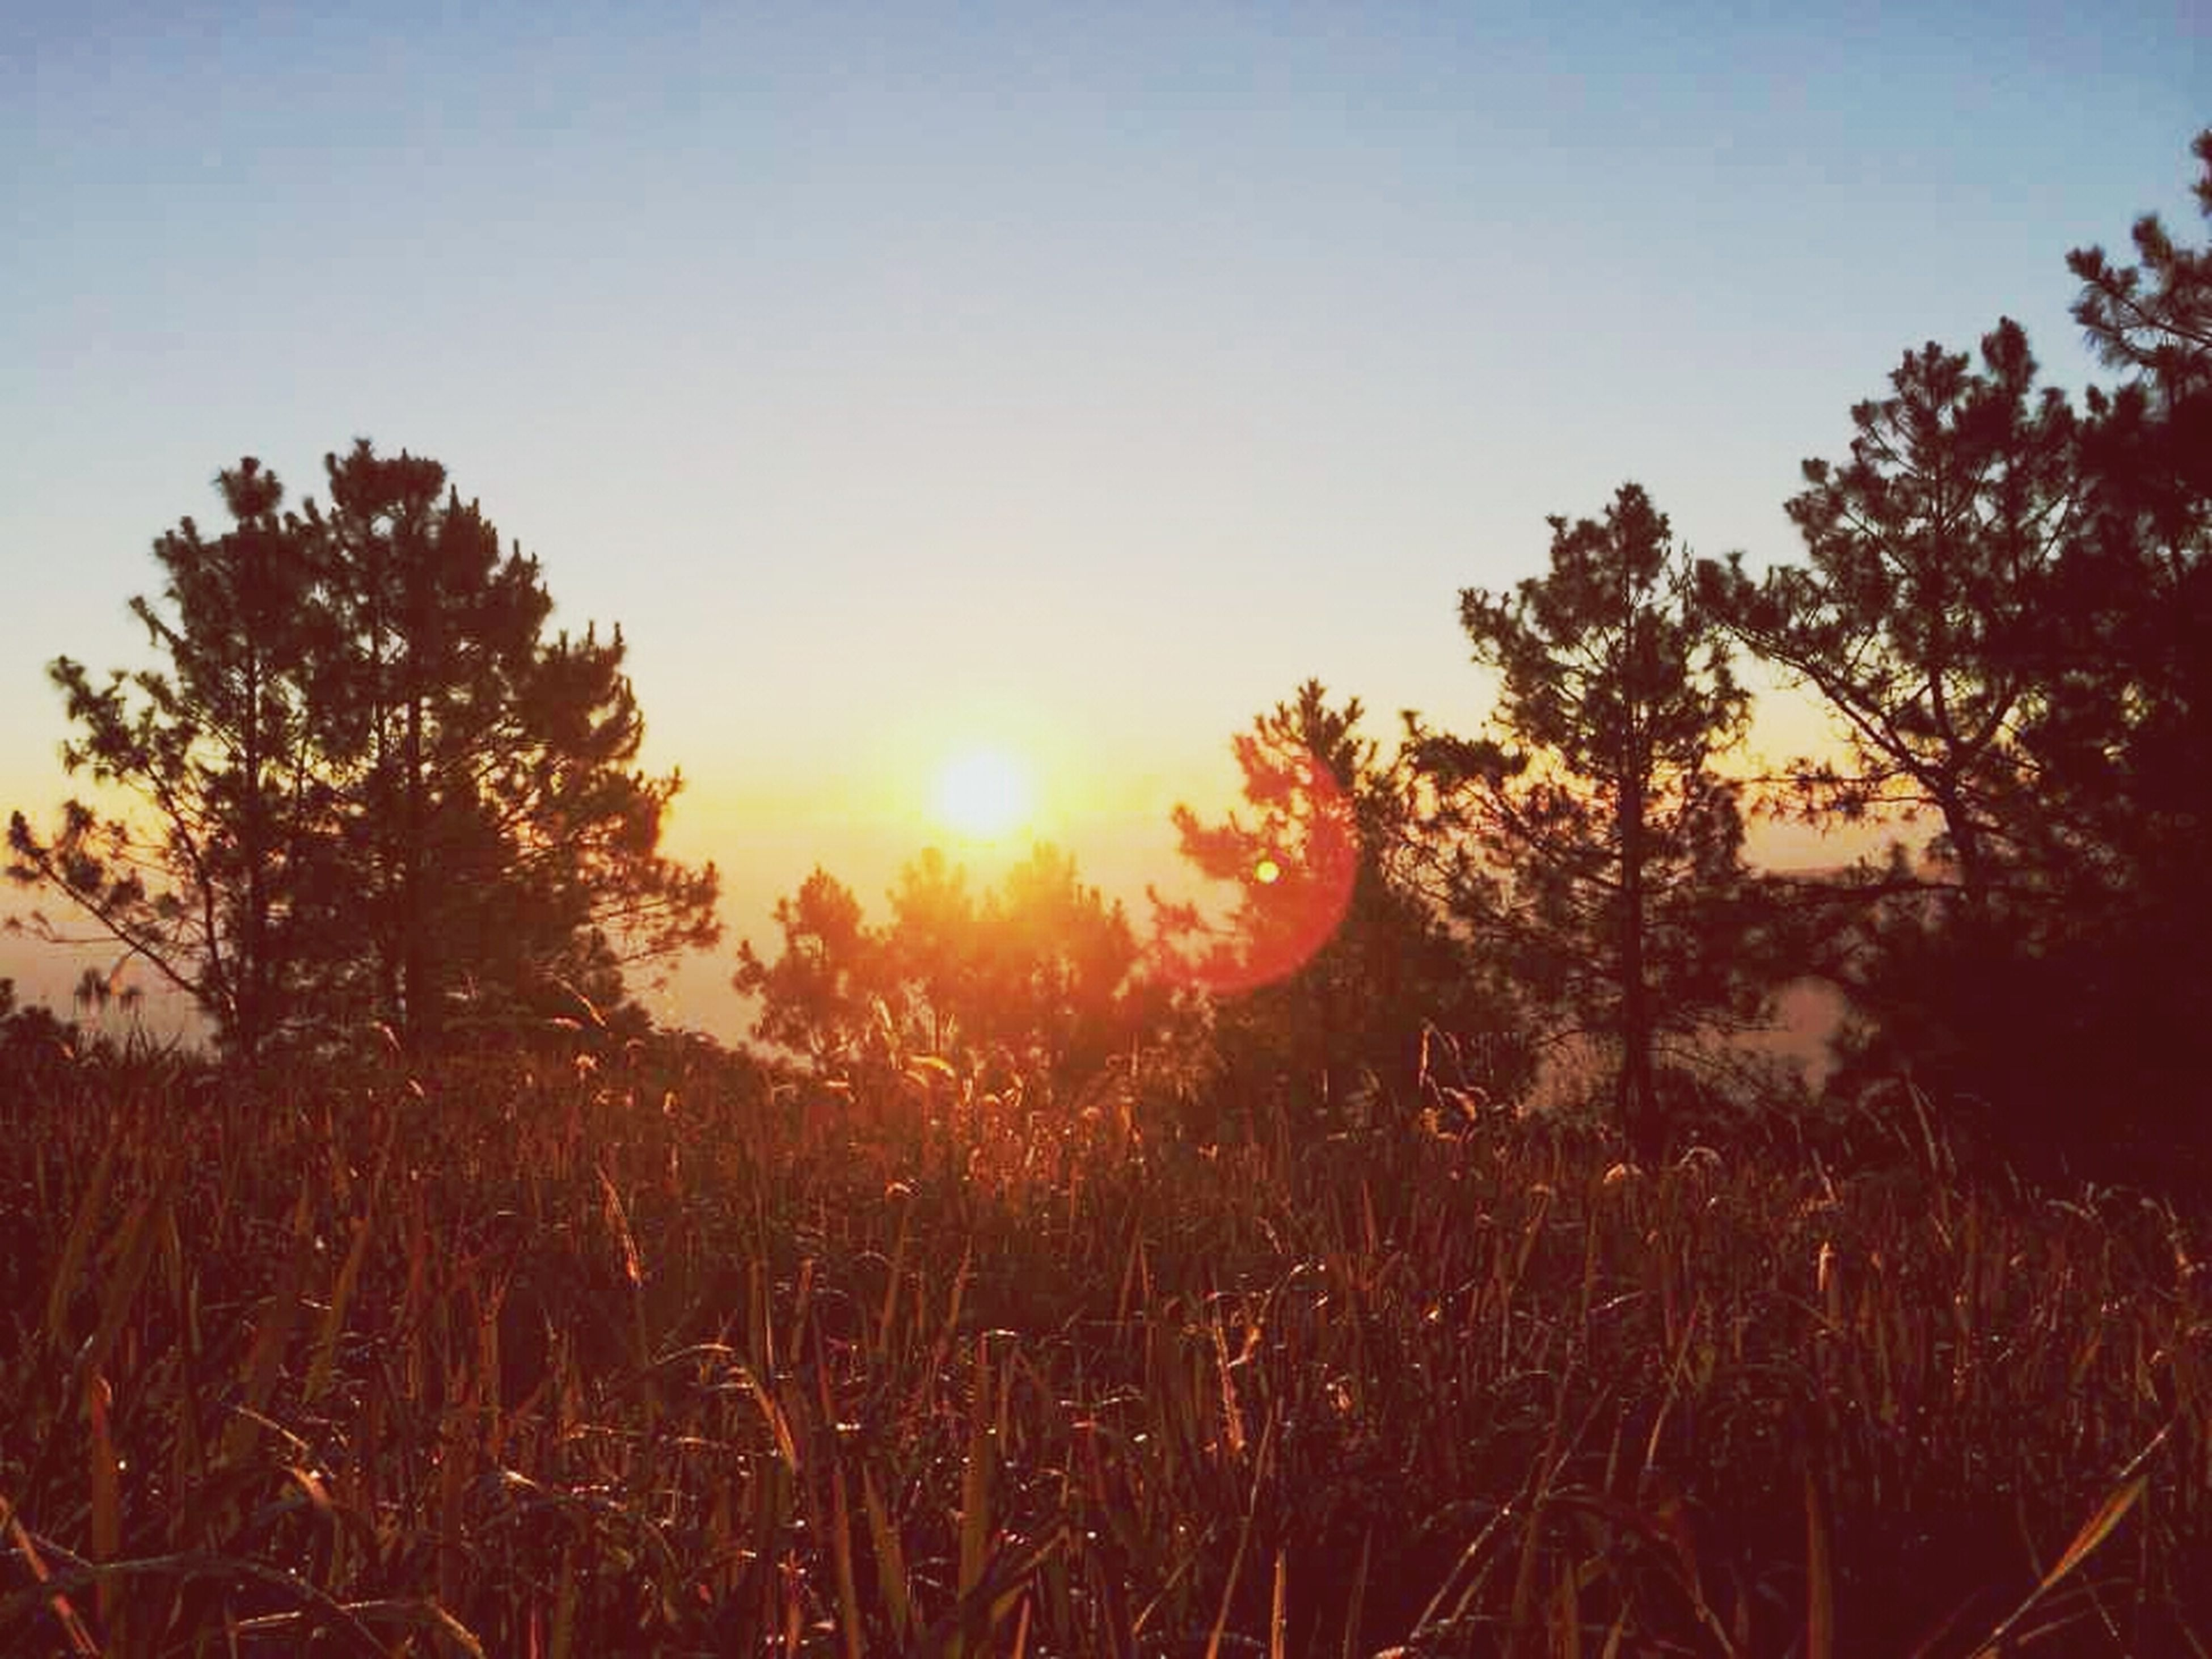 sun, sunset, clear sky, tree, tranquility, tranquil scene, beauty in nature, silhouette, growth, sunlight, scenics, nature, field, copy space, sky, lens flare, sunbeam, landscape, idyllic, plant